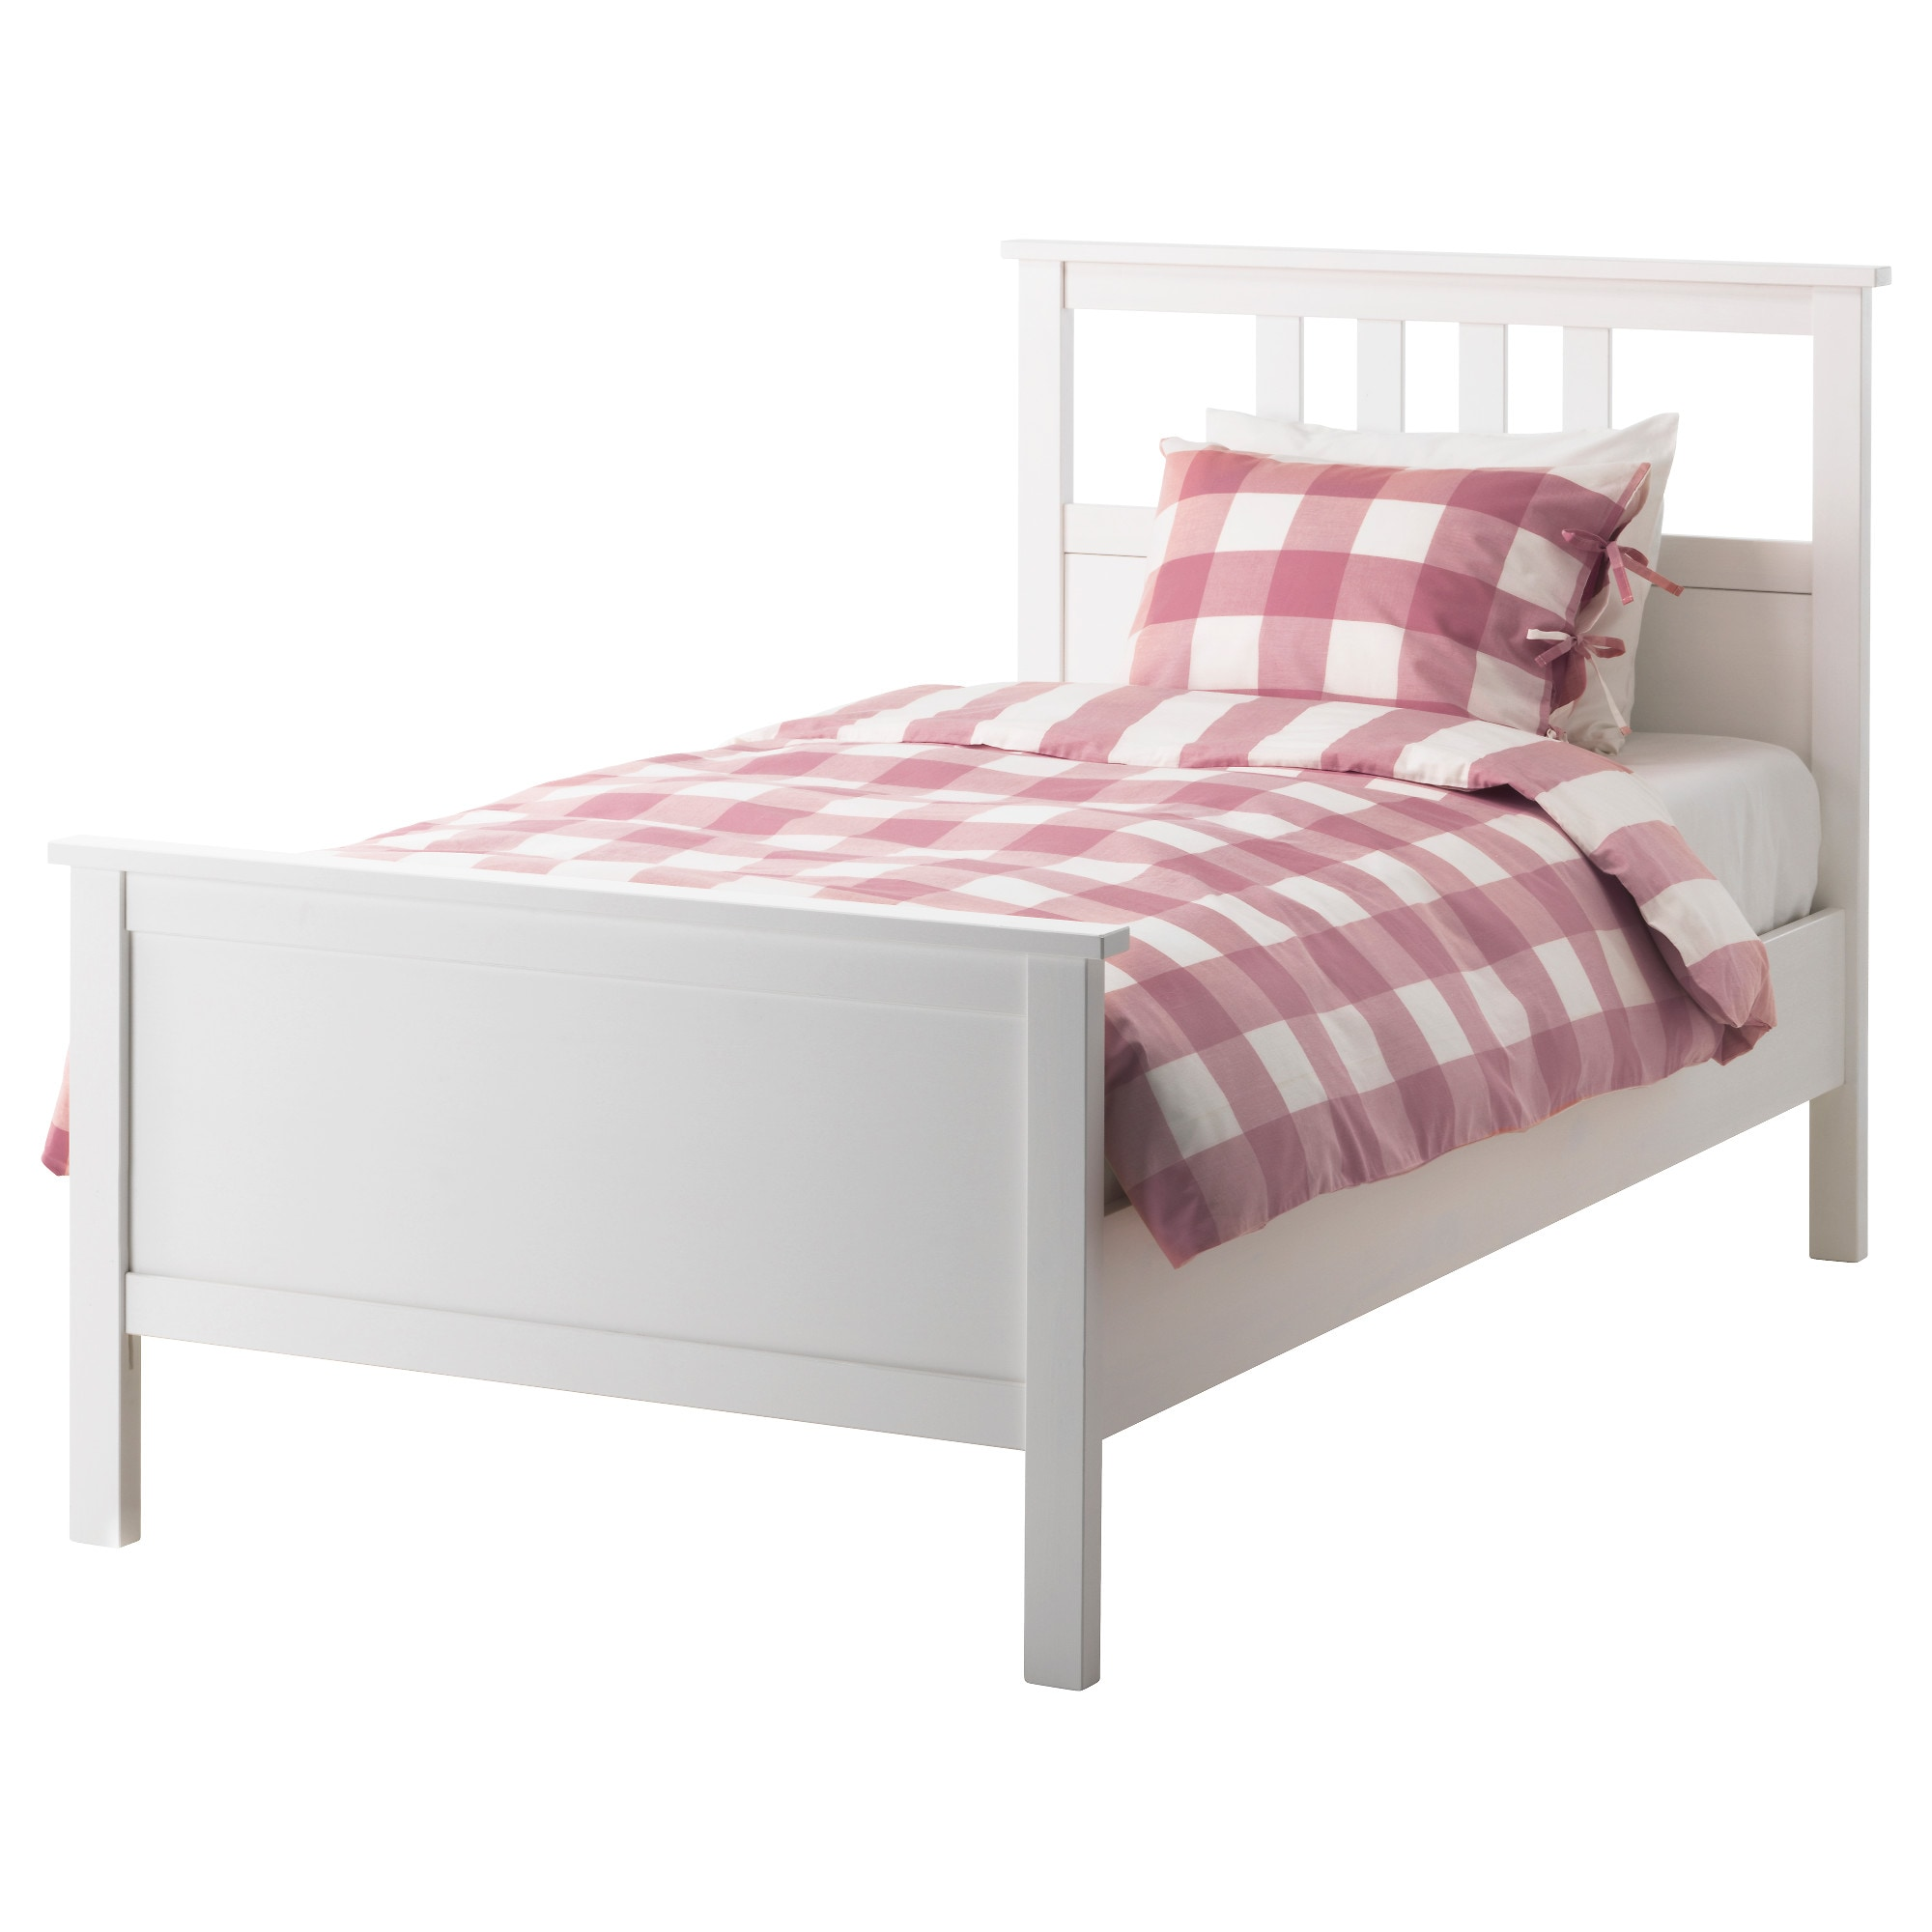 Twin Beds & Frames IKEA